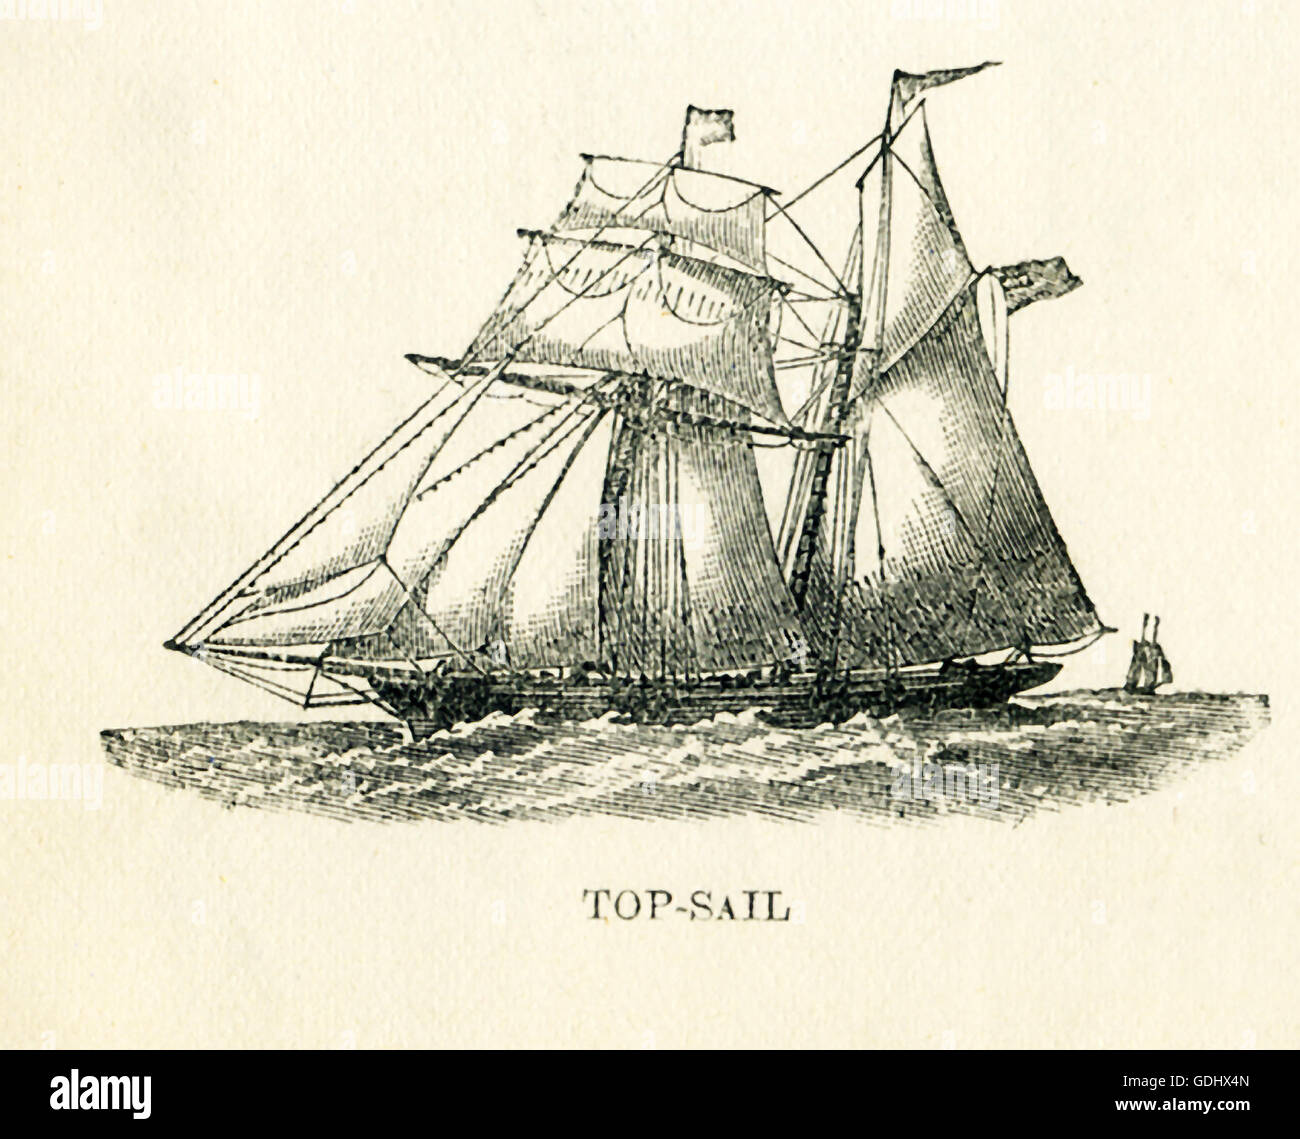 The vessel pictured in this 19th-century drawing is a schooner, specifically a top-sail. - Stock Image